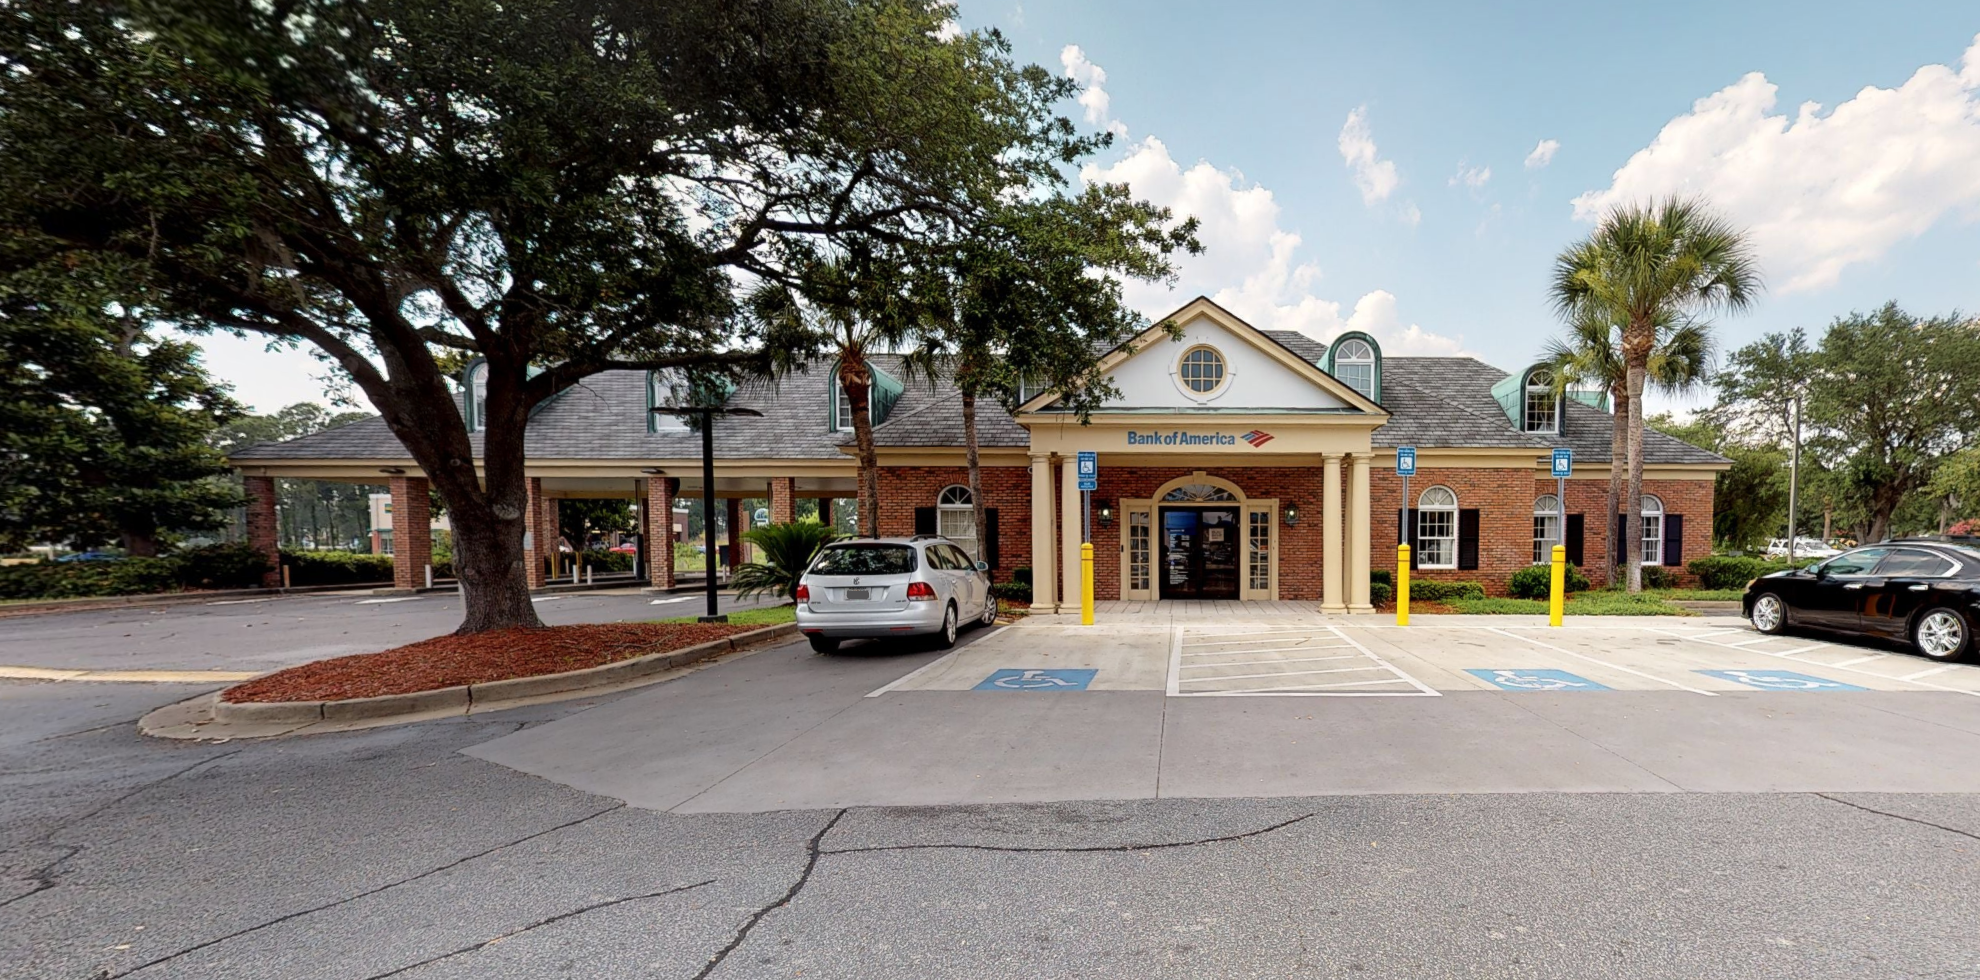 Bank of America financial center with drive-thru ATM and teller | 167 Altama Connector, Brunswick, GA 31525